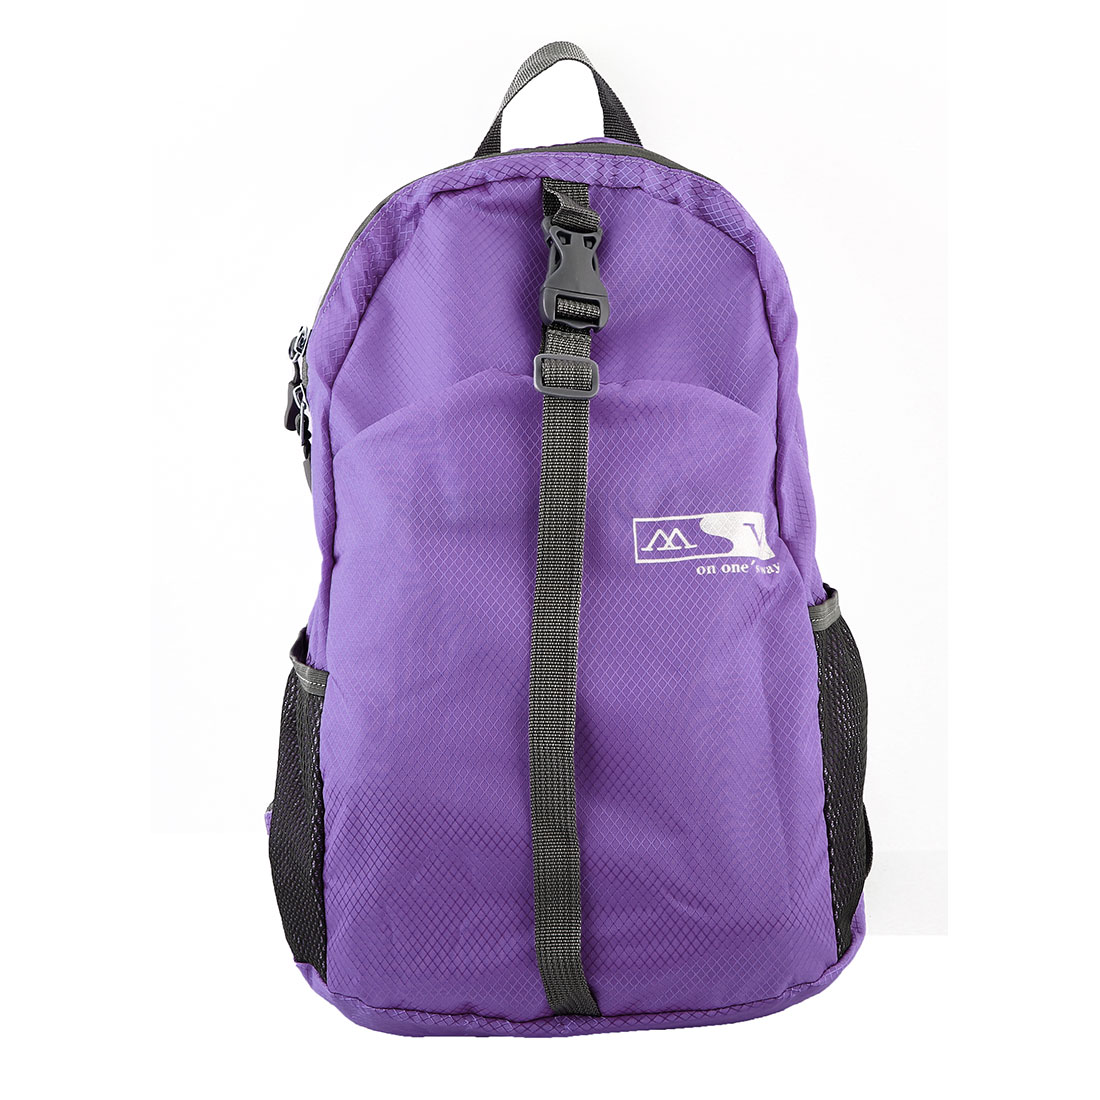 Lightweight Foldable Pack Hiking Camping Daypack Water Resistant Travel Backpack Sport Bag Purple 20L